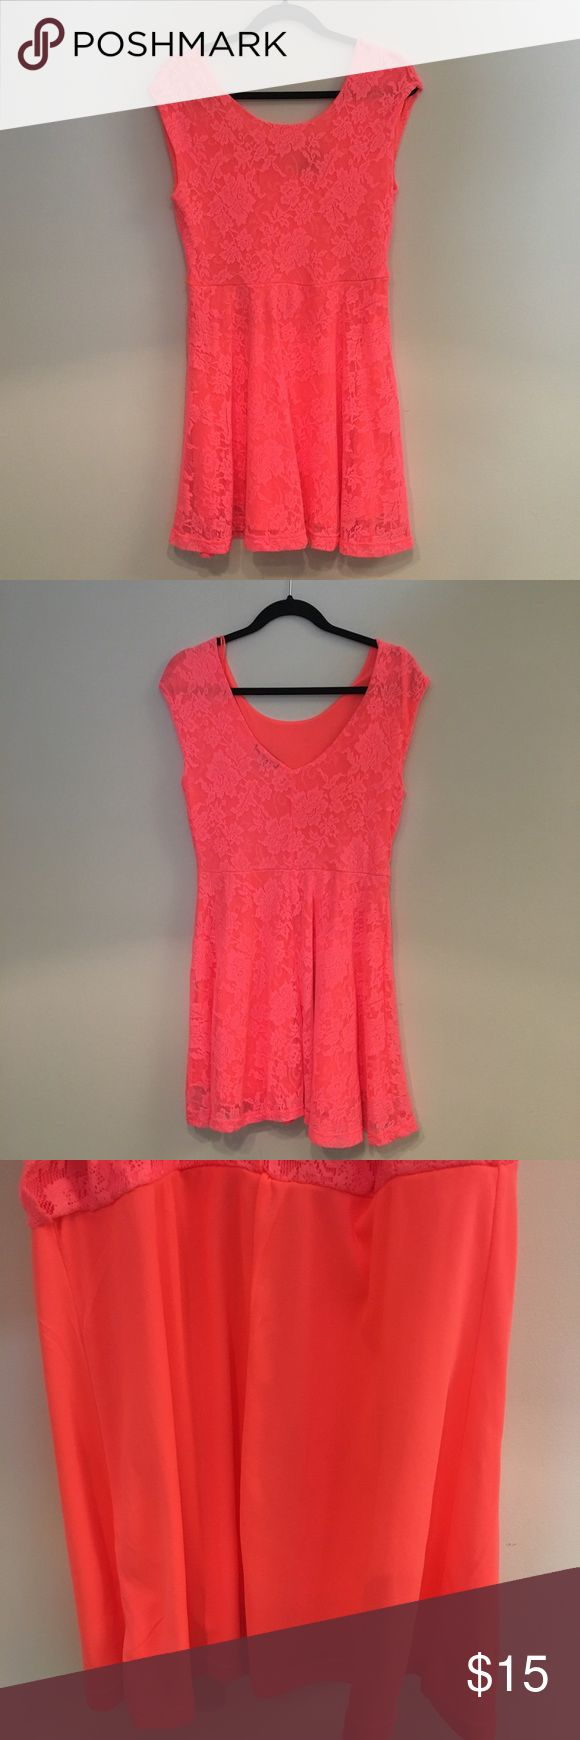 Coral Lace Dress 👗 Light, comfy coral colored lace dress from Cotton On! It is very eye catching as the color is so bright in person! The back dips lower to show off your back. Let me know if you have any questions and feel free to make an offer! 😊 Cotton On Dresses Mini